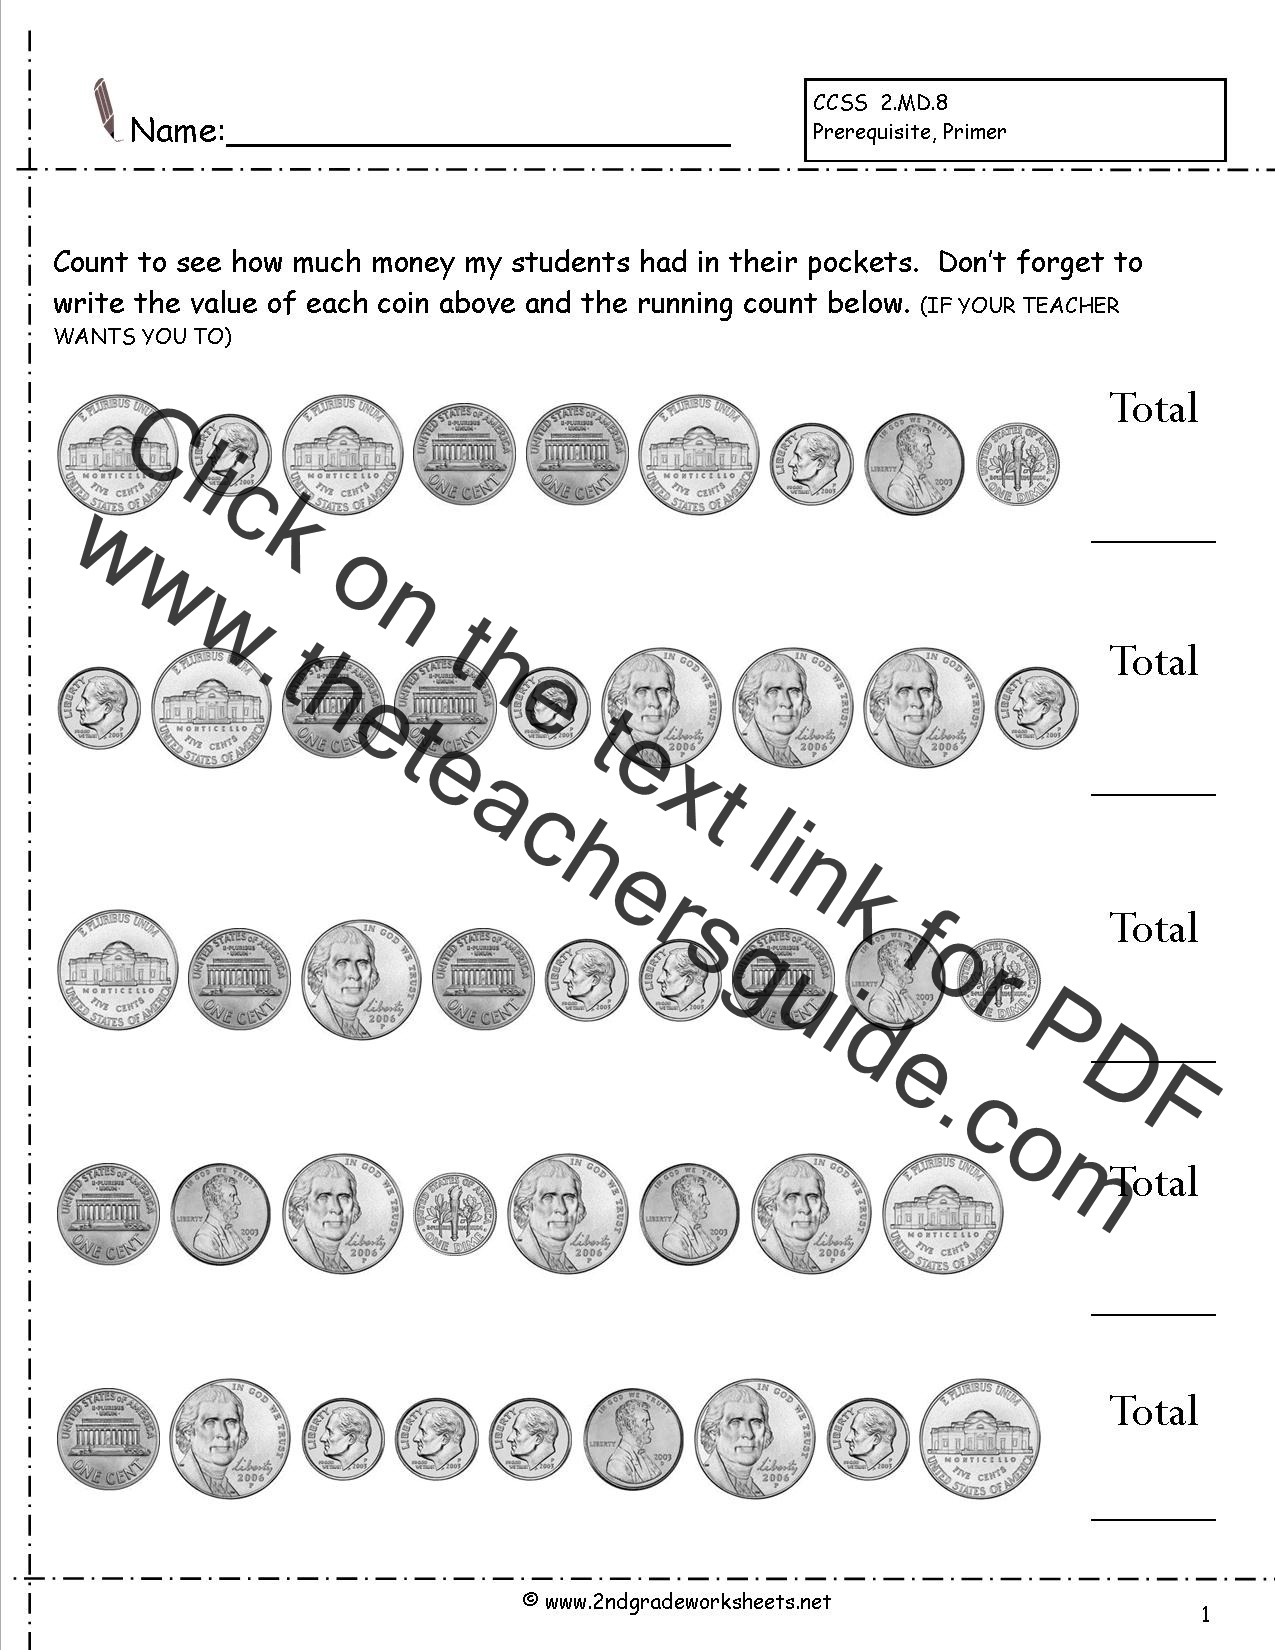 Worksheets Common Core Math Worksheets 1st Grade counting coins and money worksheets printouts worksheet without quarters common core